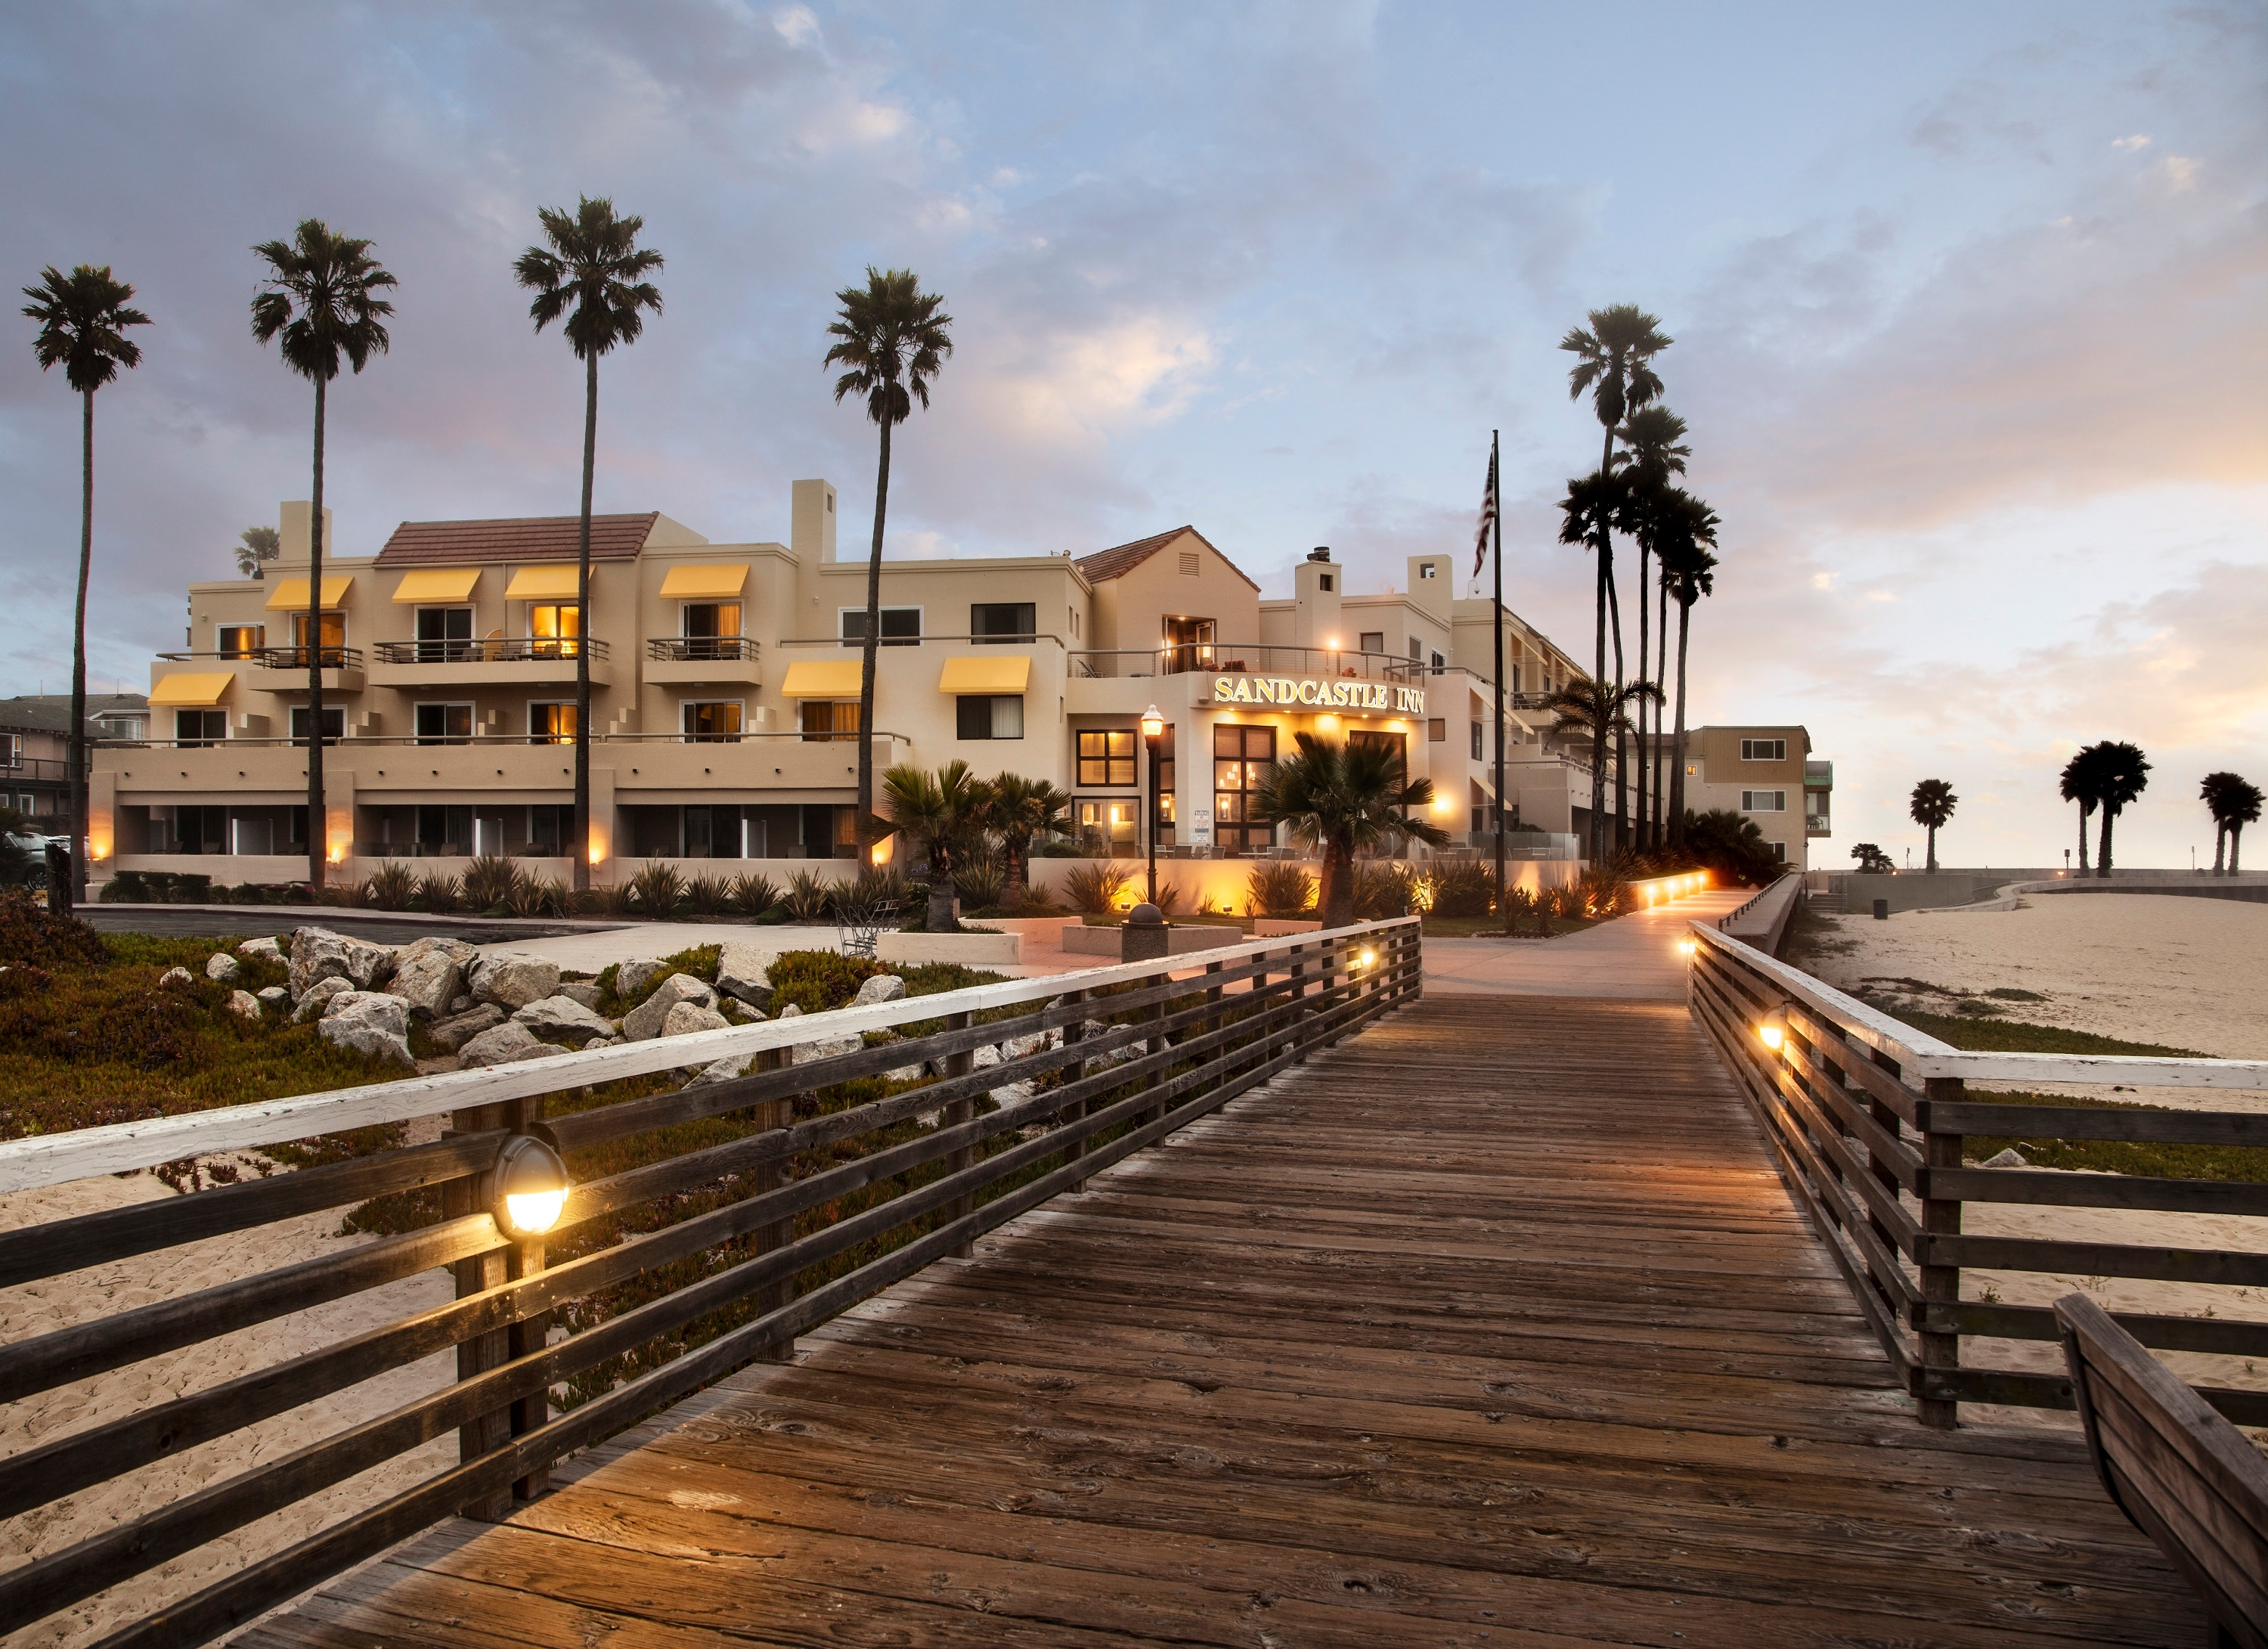 Sandcastle Inn, Pismo Beach CA